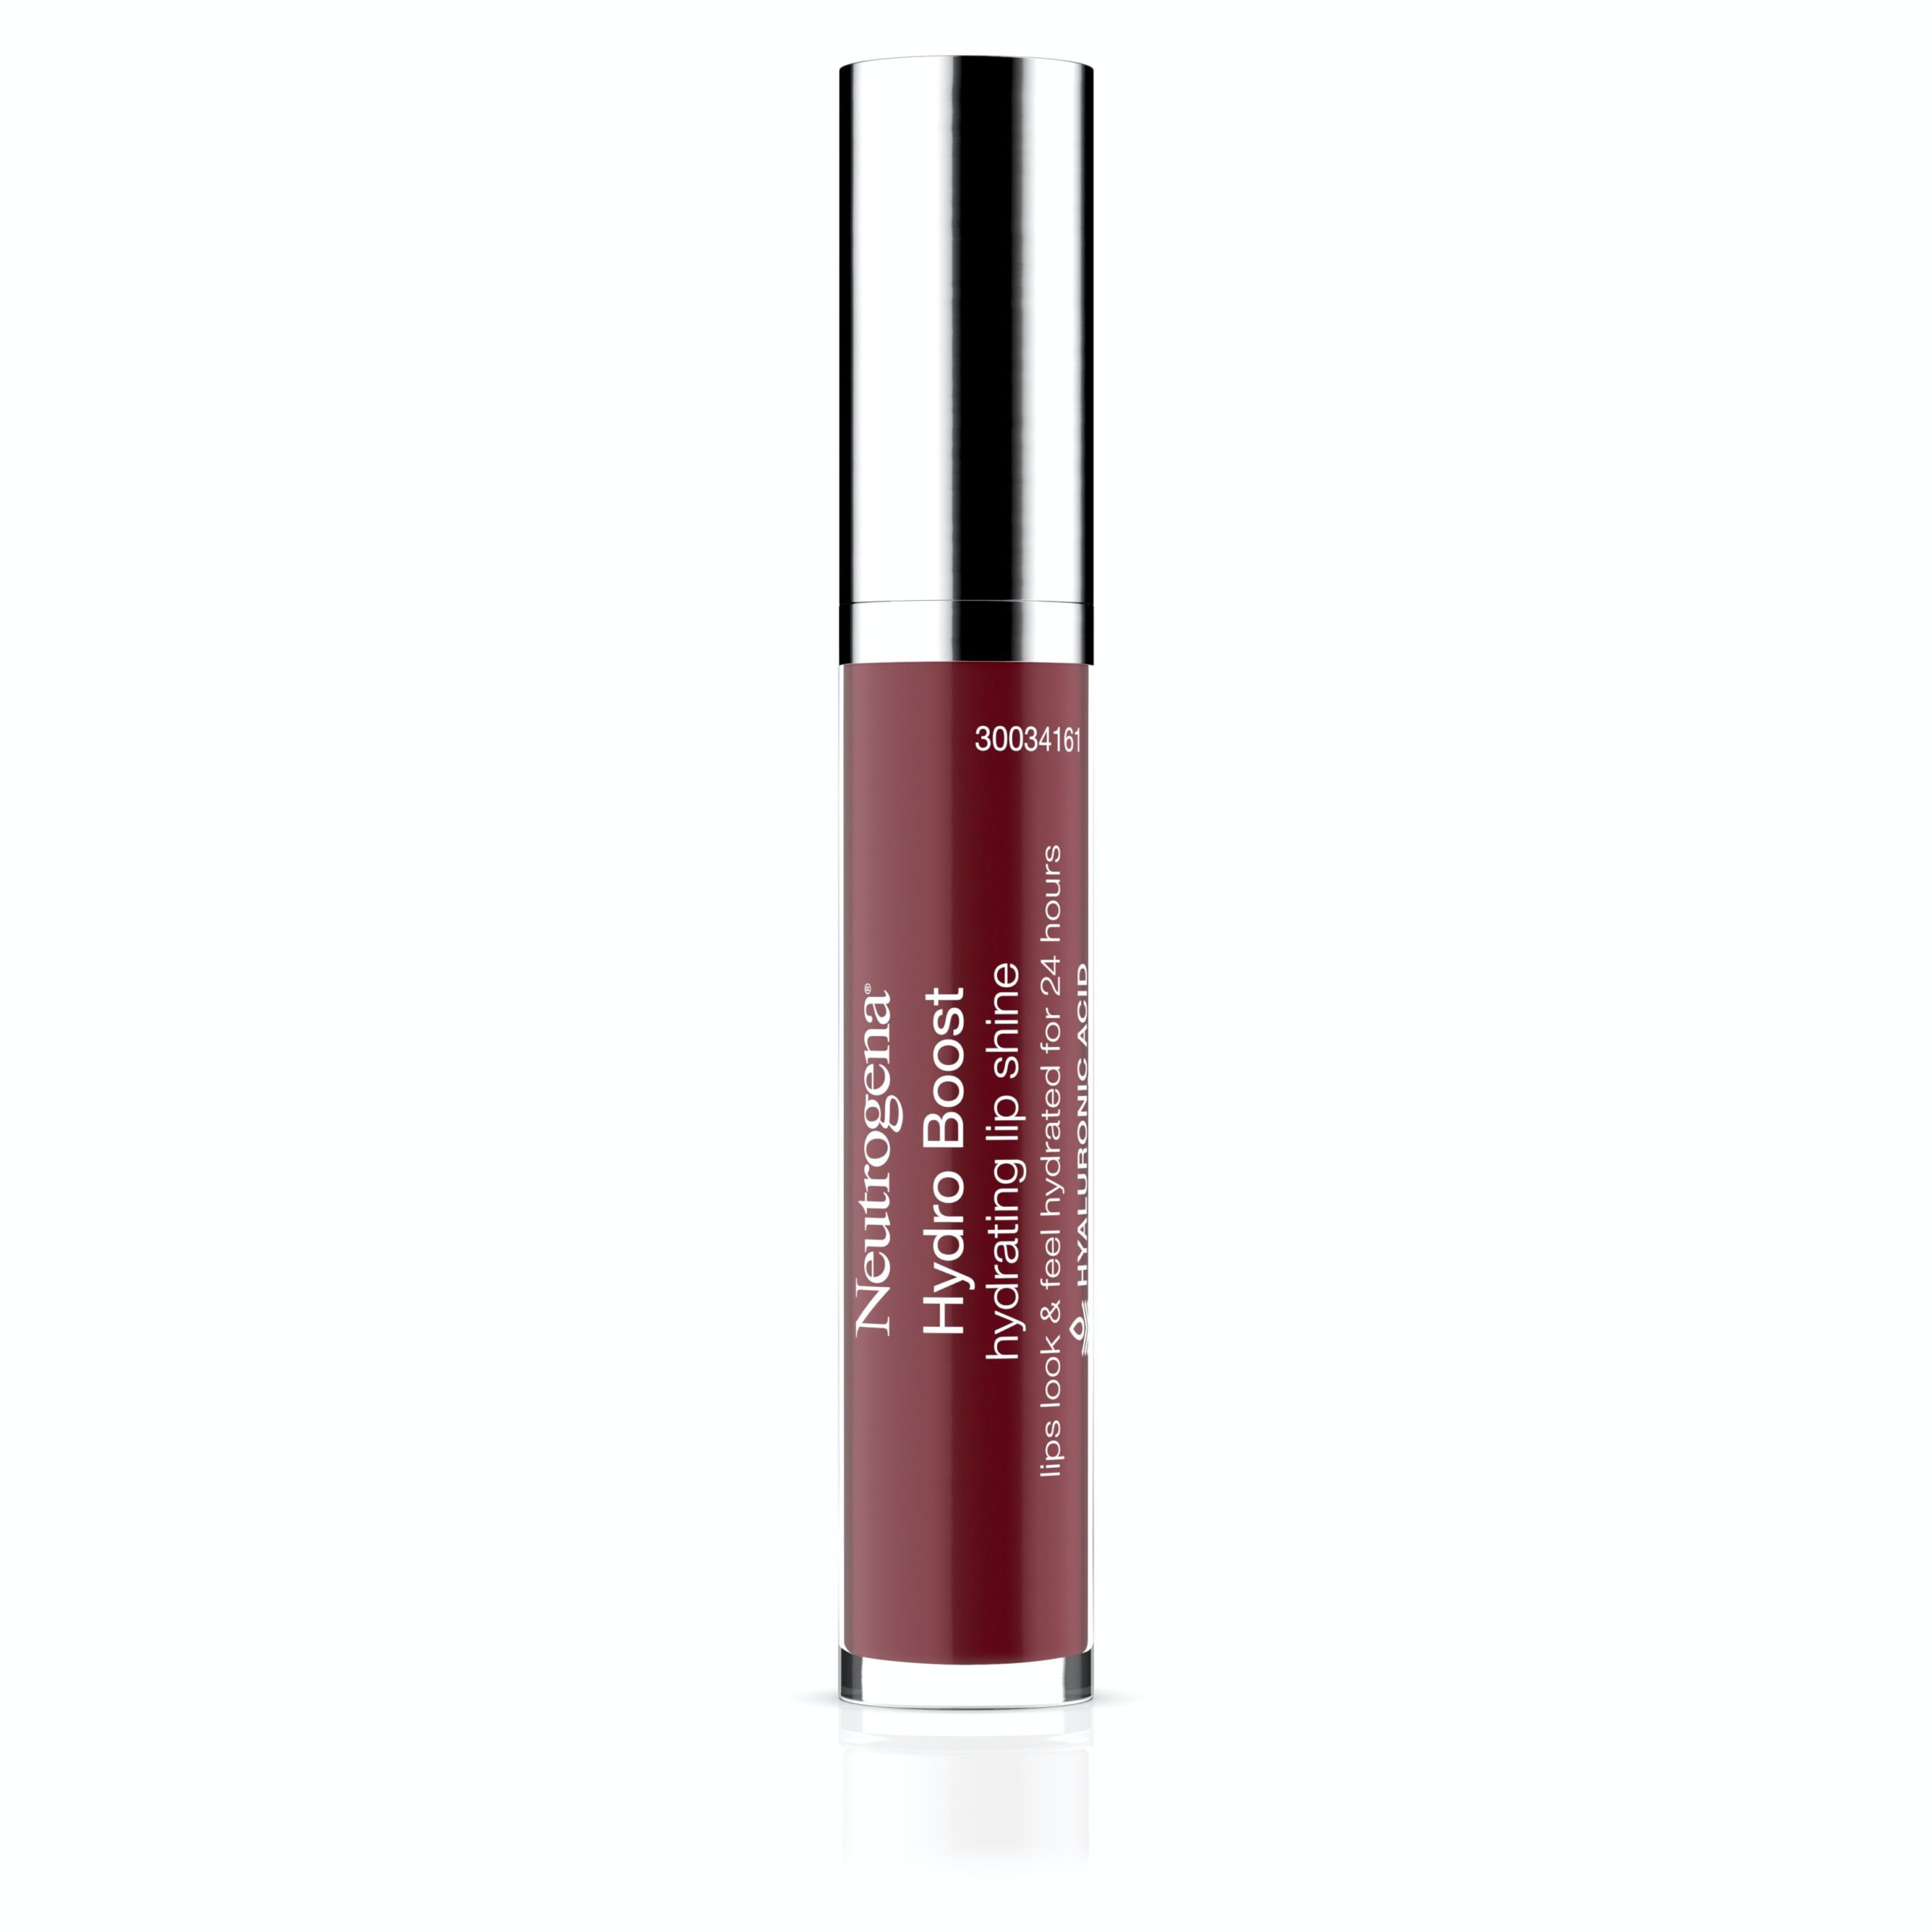 Hydro Boost Hydrating Lip Shine - Velvet Wine